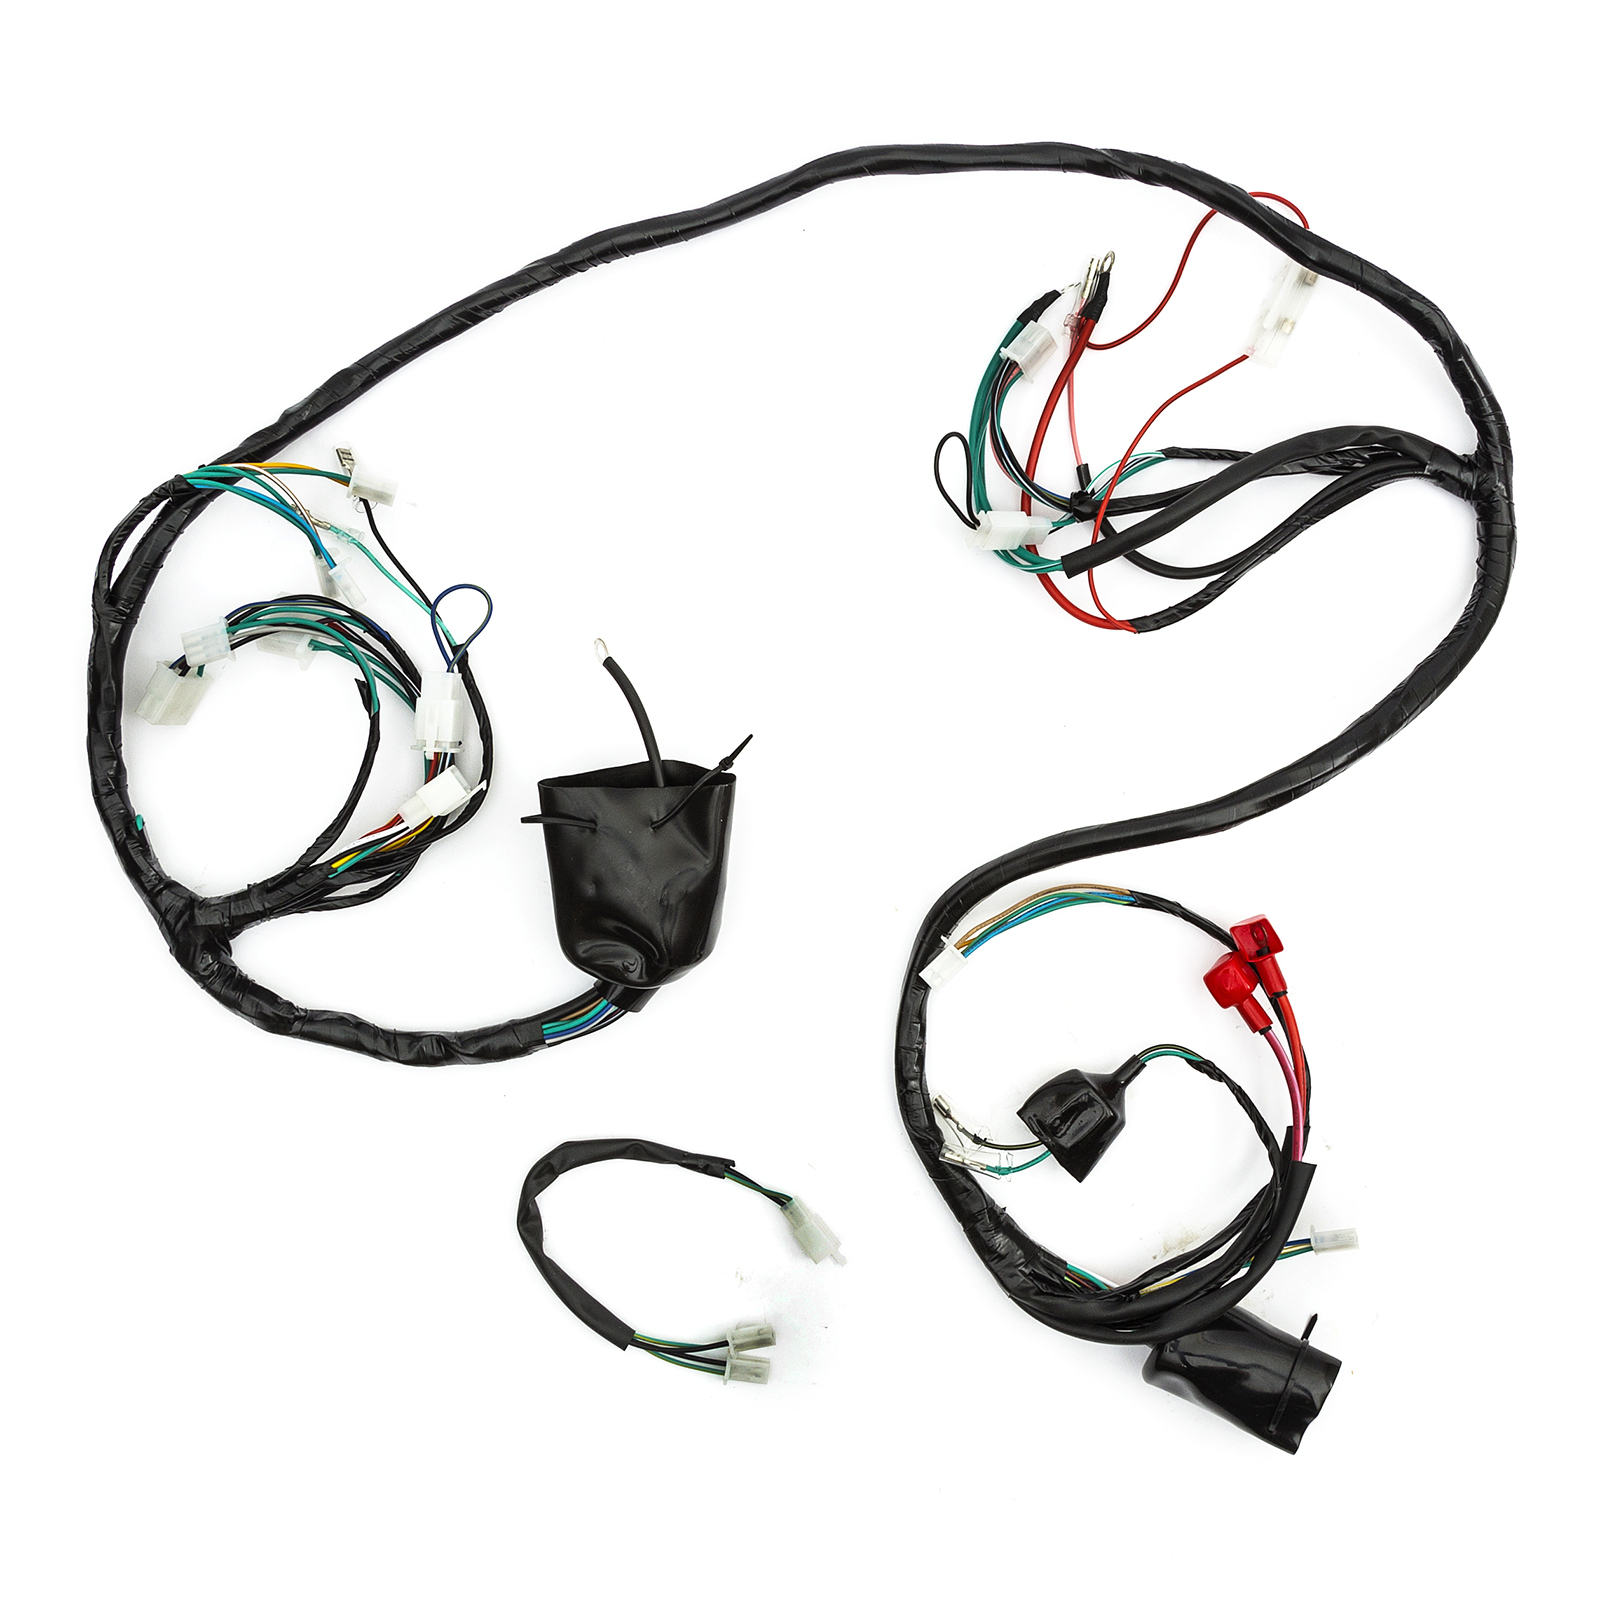 Generic Wiring Loom Baotian 49cc 50cc Chinese Brand Road